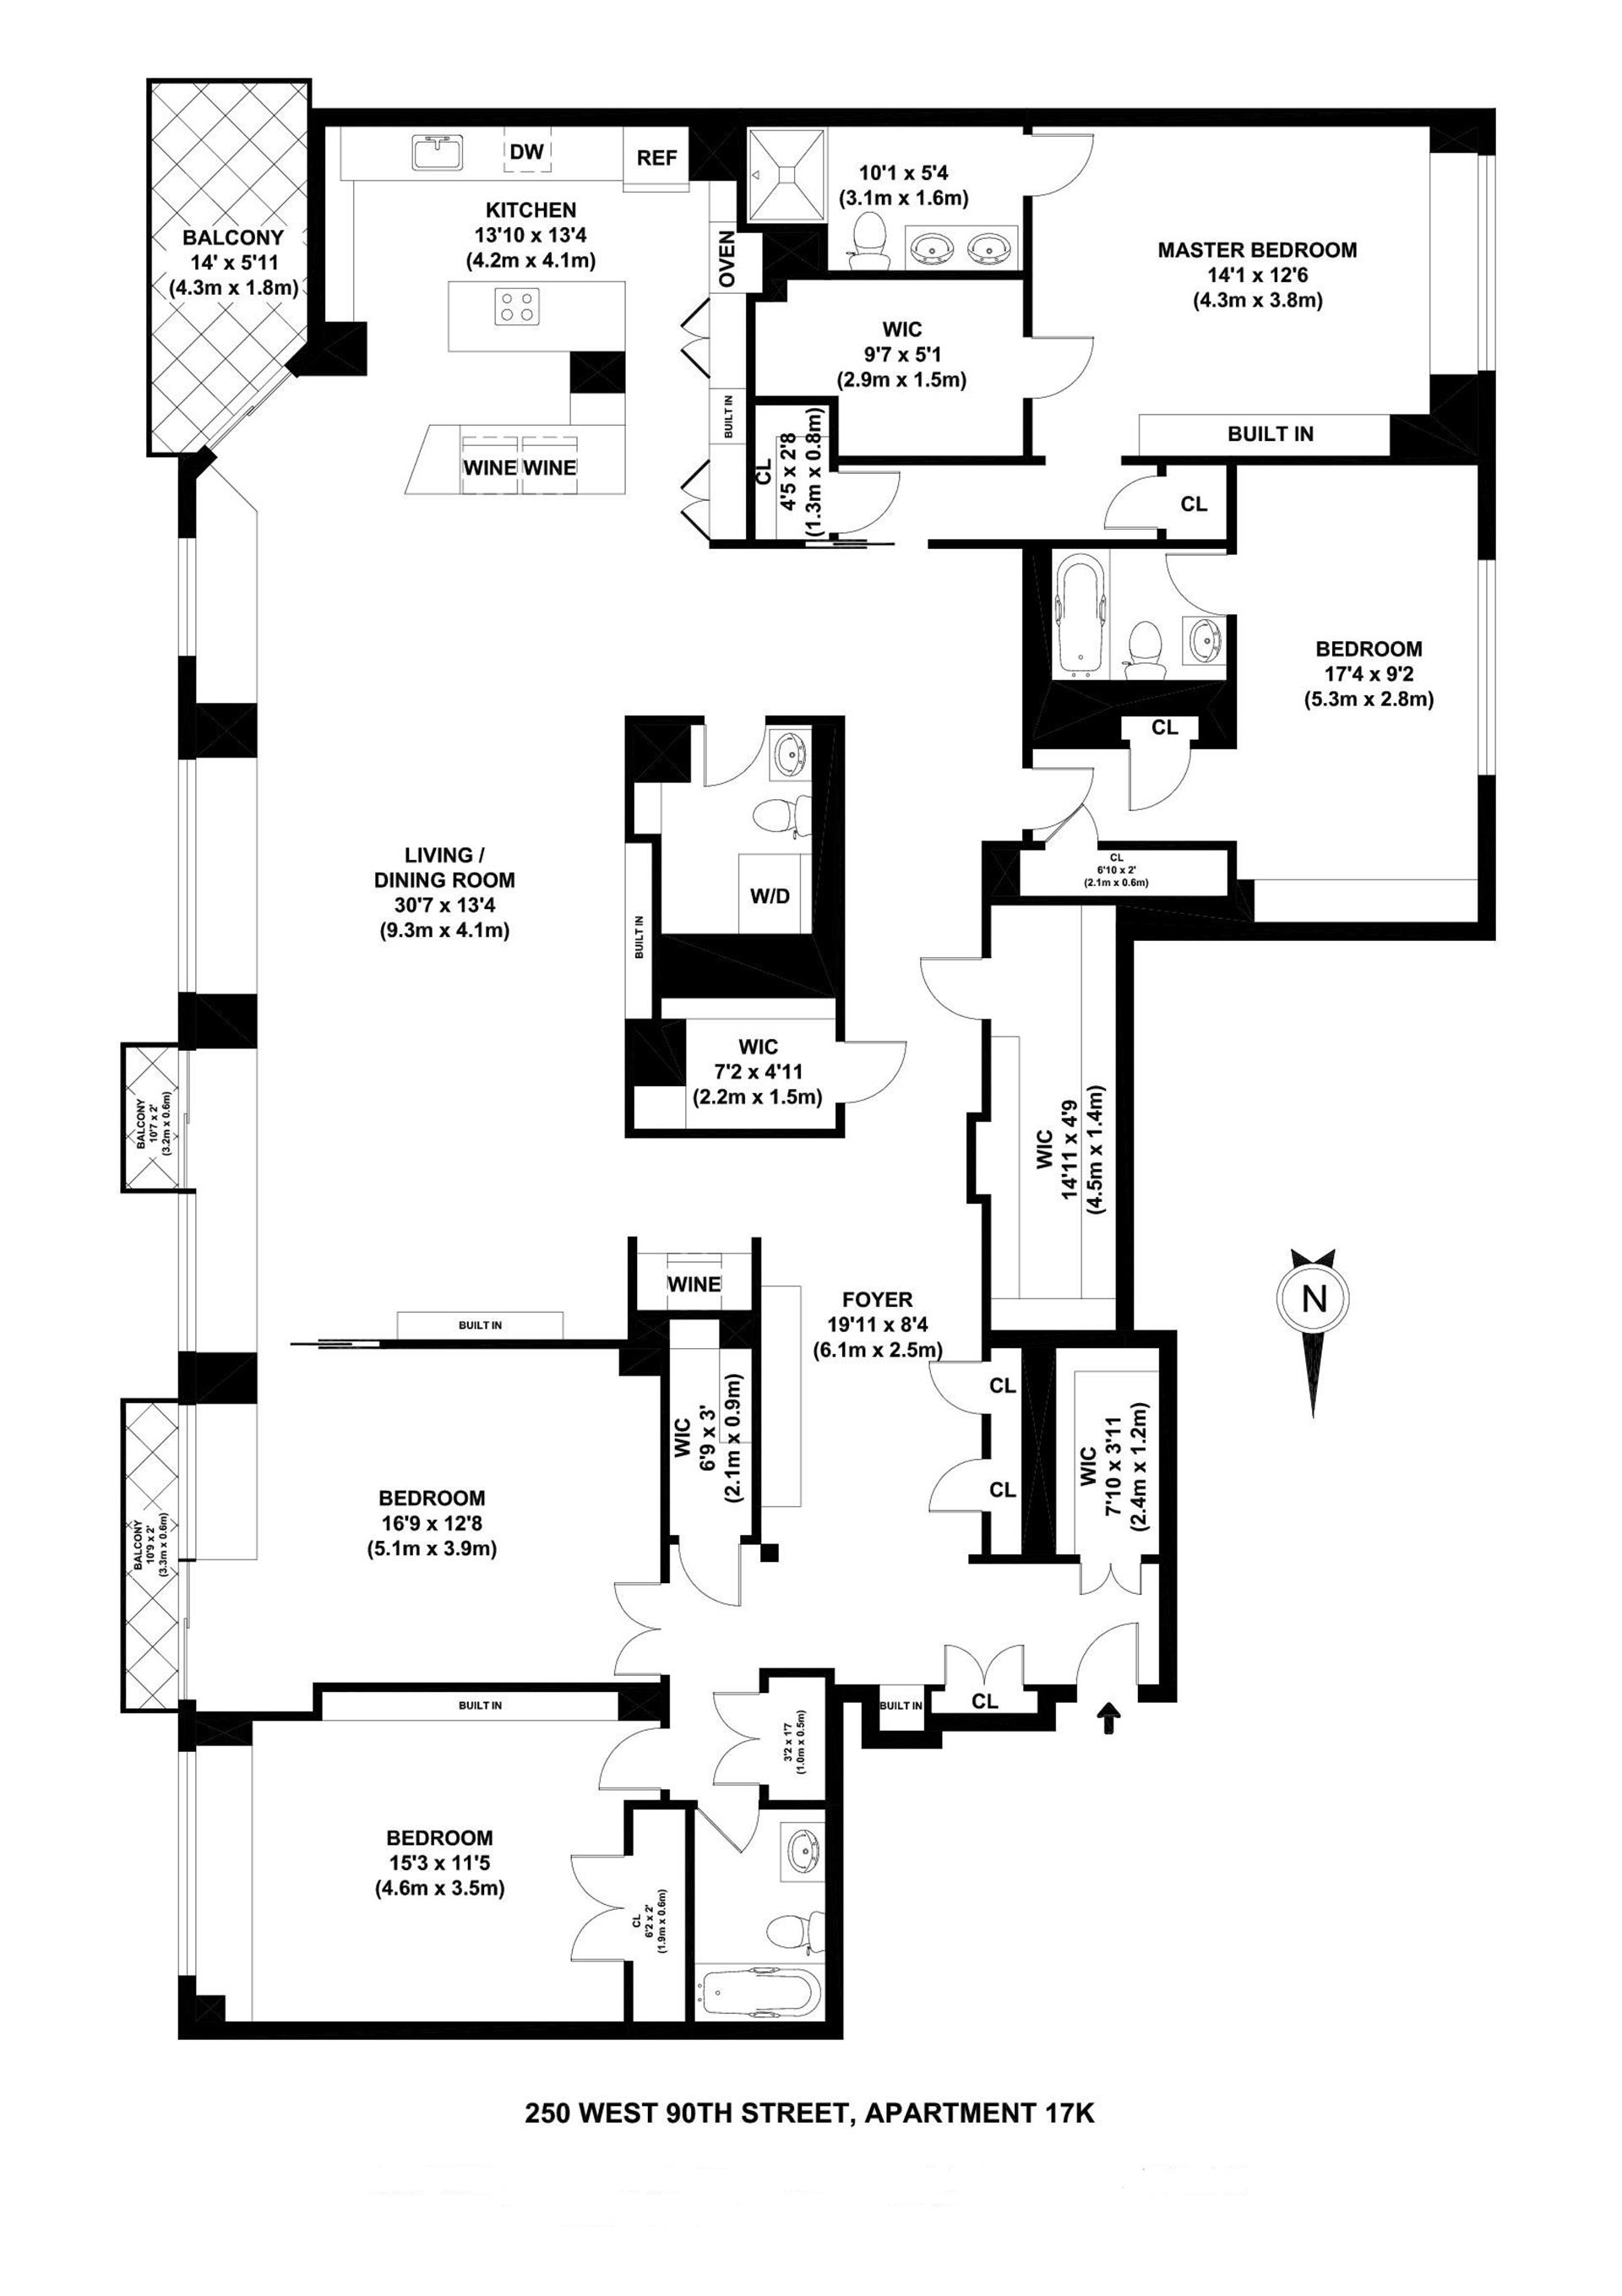 Floor plan of NEW WEST CONDO, 250 West 90th St, 17JKI - Upper West Side, New York